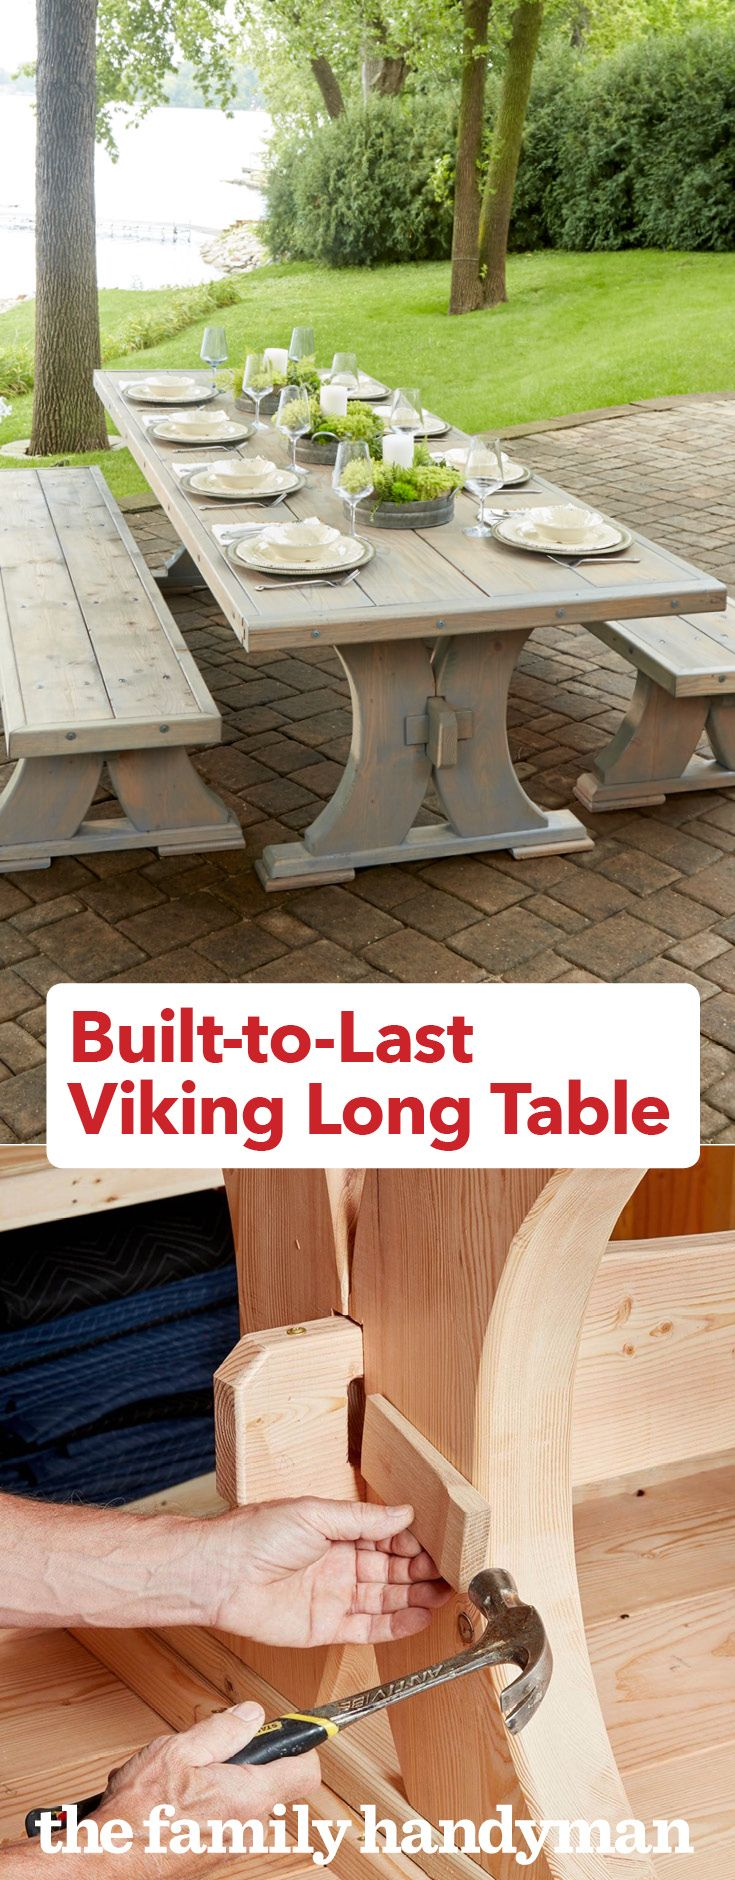 Constructed-to-Final Viking Lengthy Desk